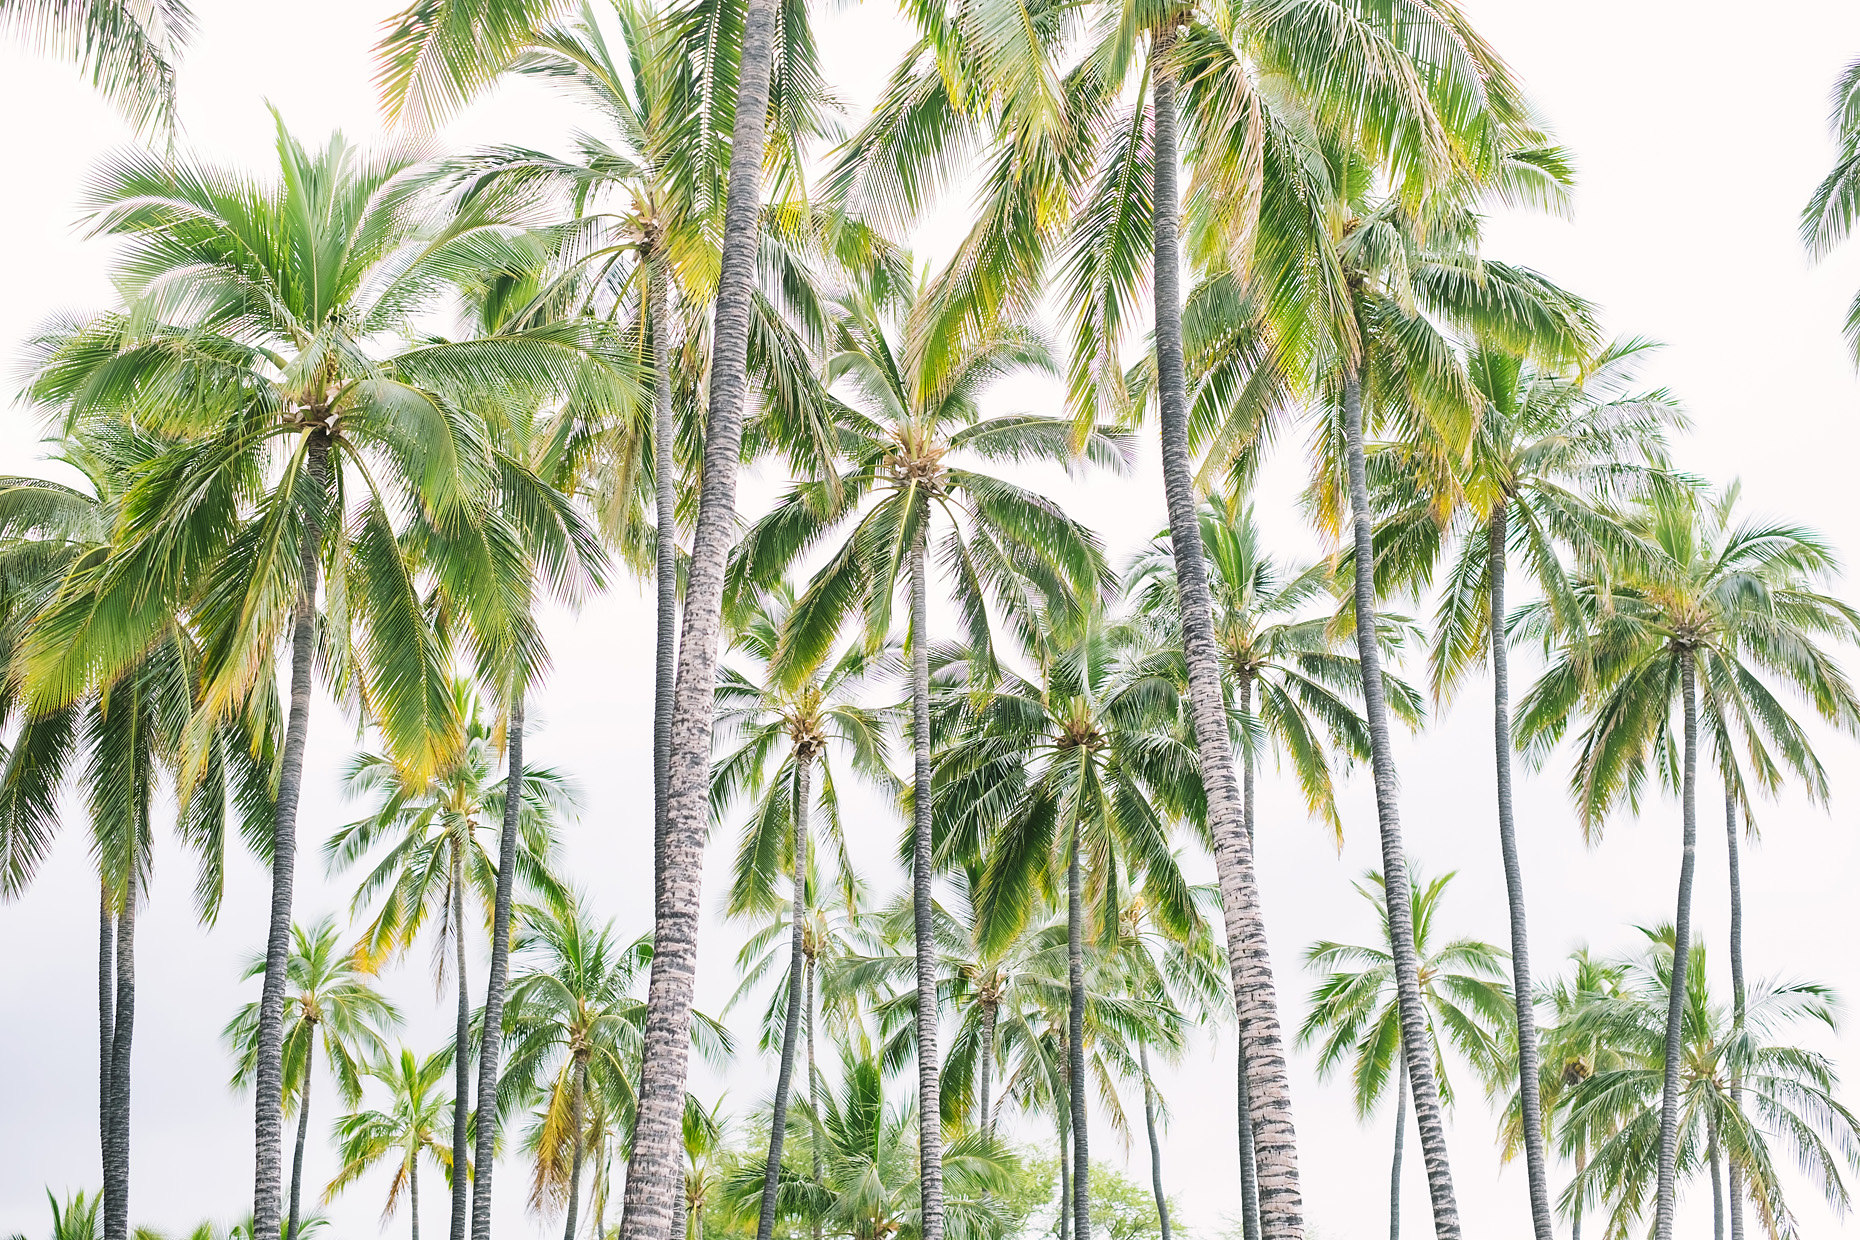 Hawaii_PalmTrees_EG_1282